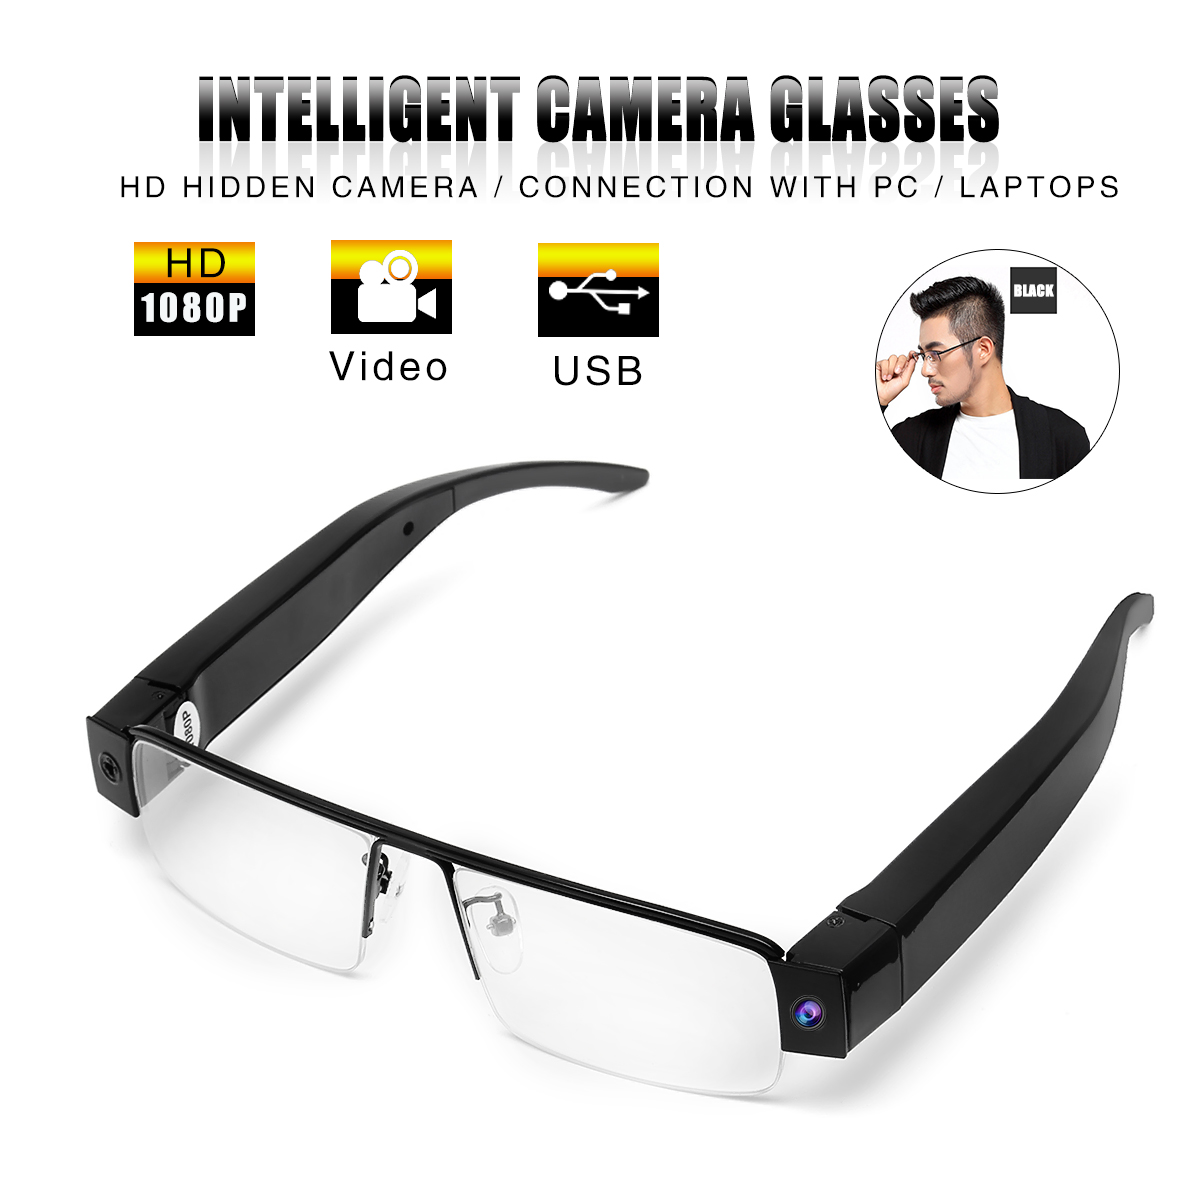 1080P HD Hidden Camera Eyewear Security Video Recorder DVR Glasses Camcorder for PC Laptop